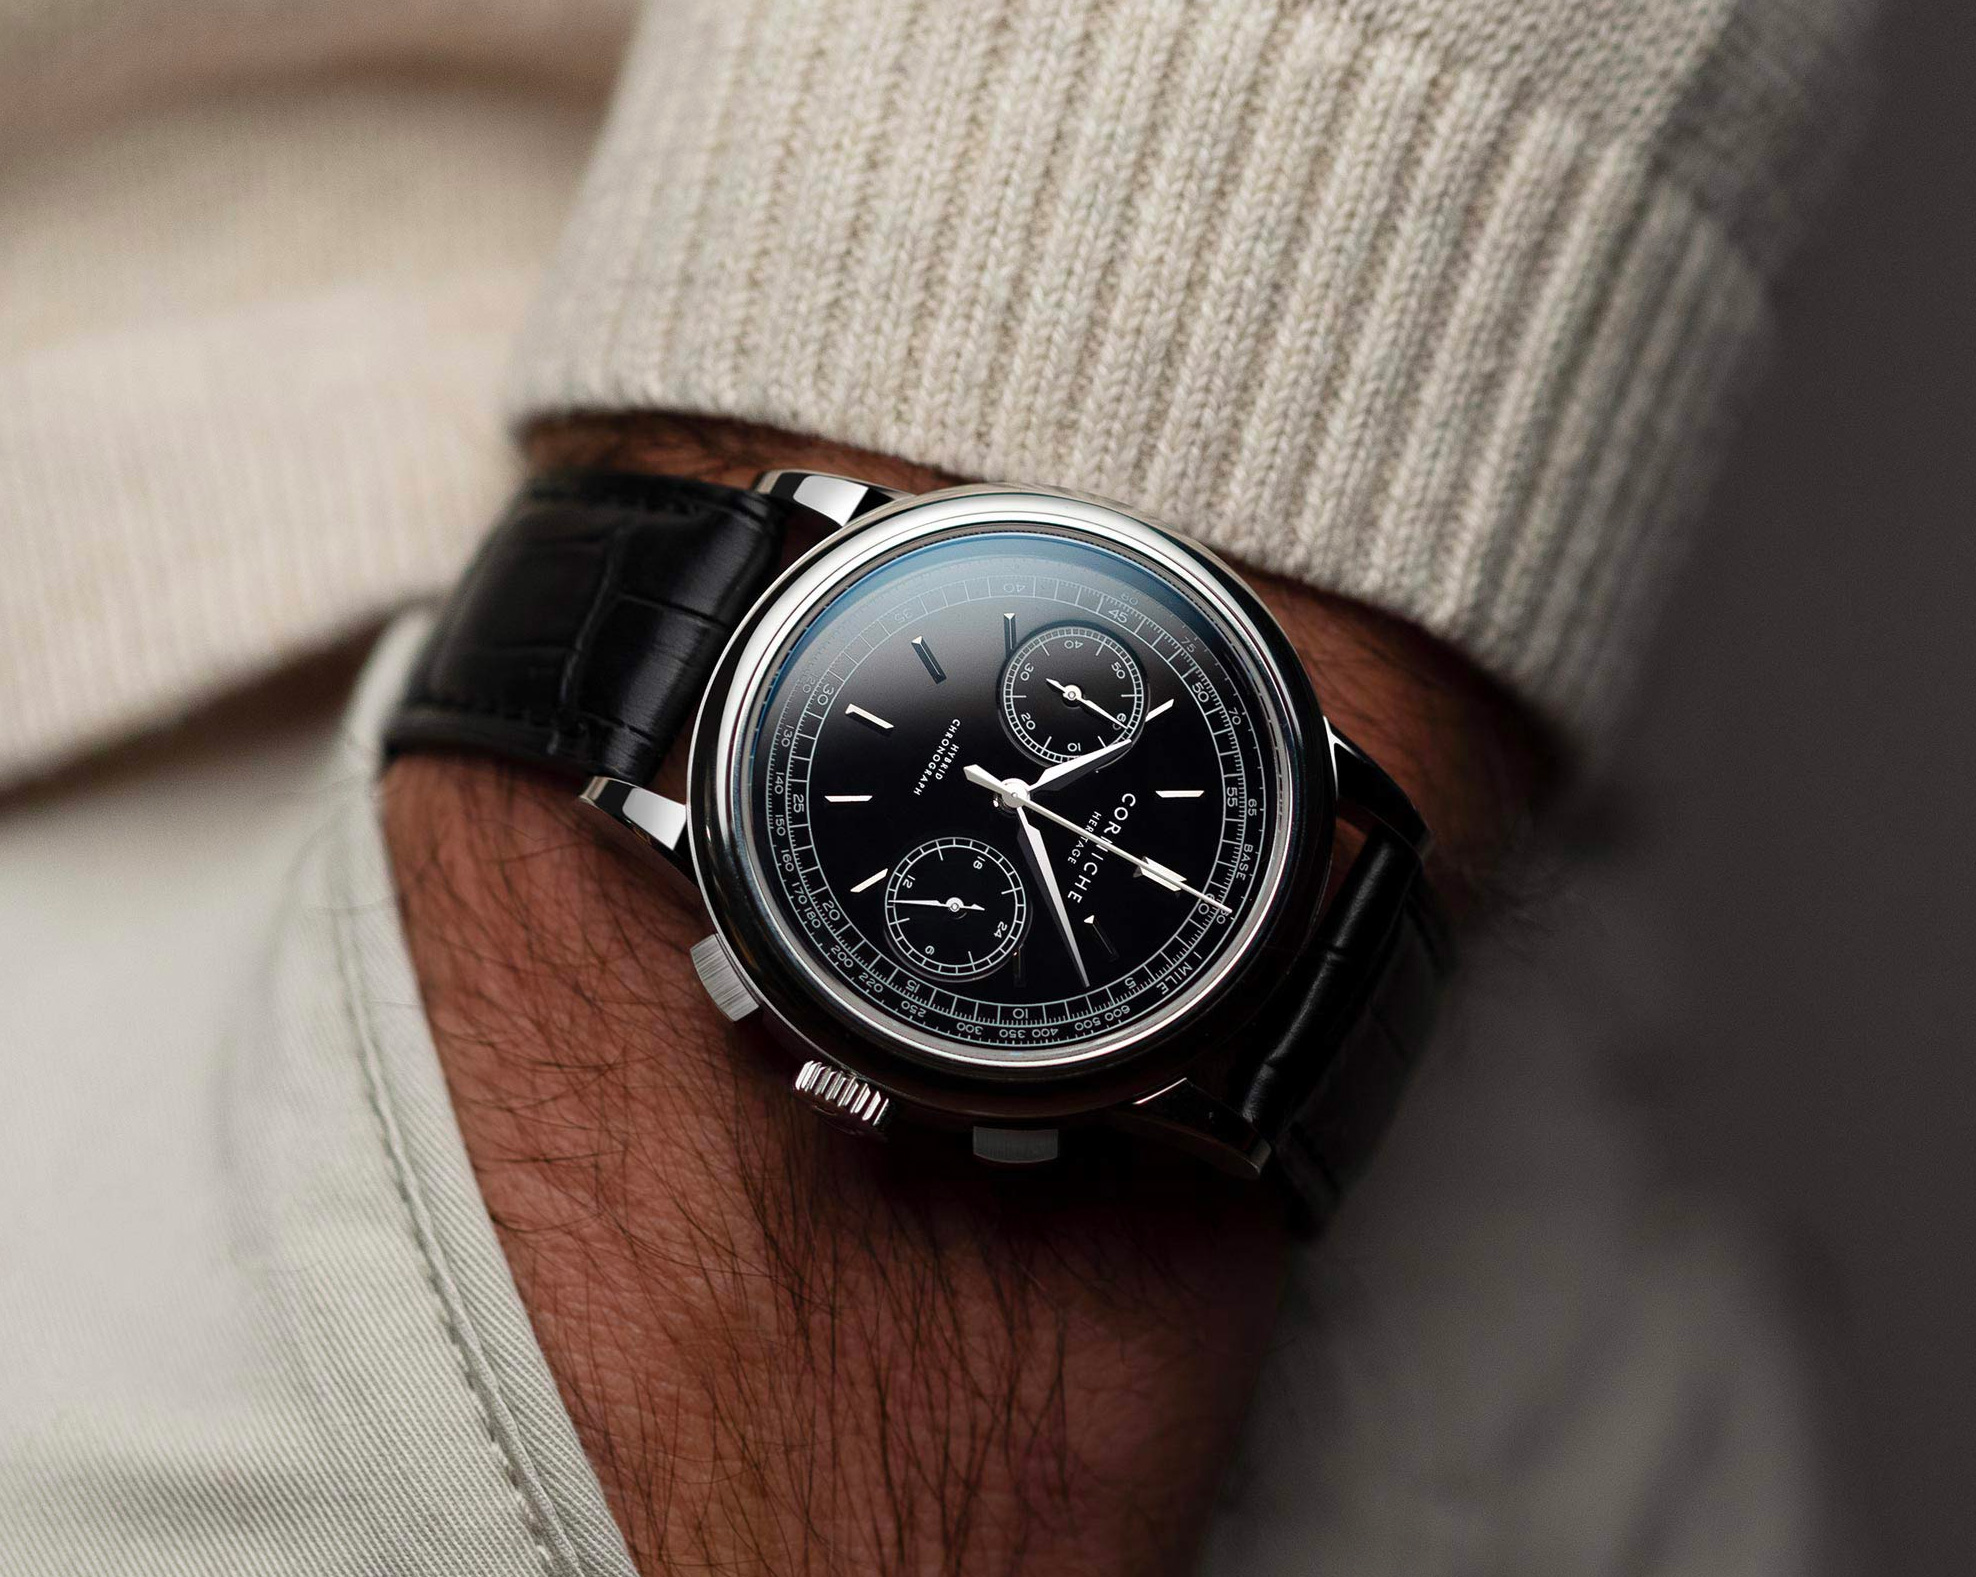 Bang For Your Buck: The Corniche Heritage Chronograph at werd.com